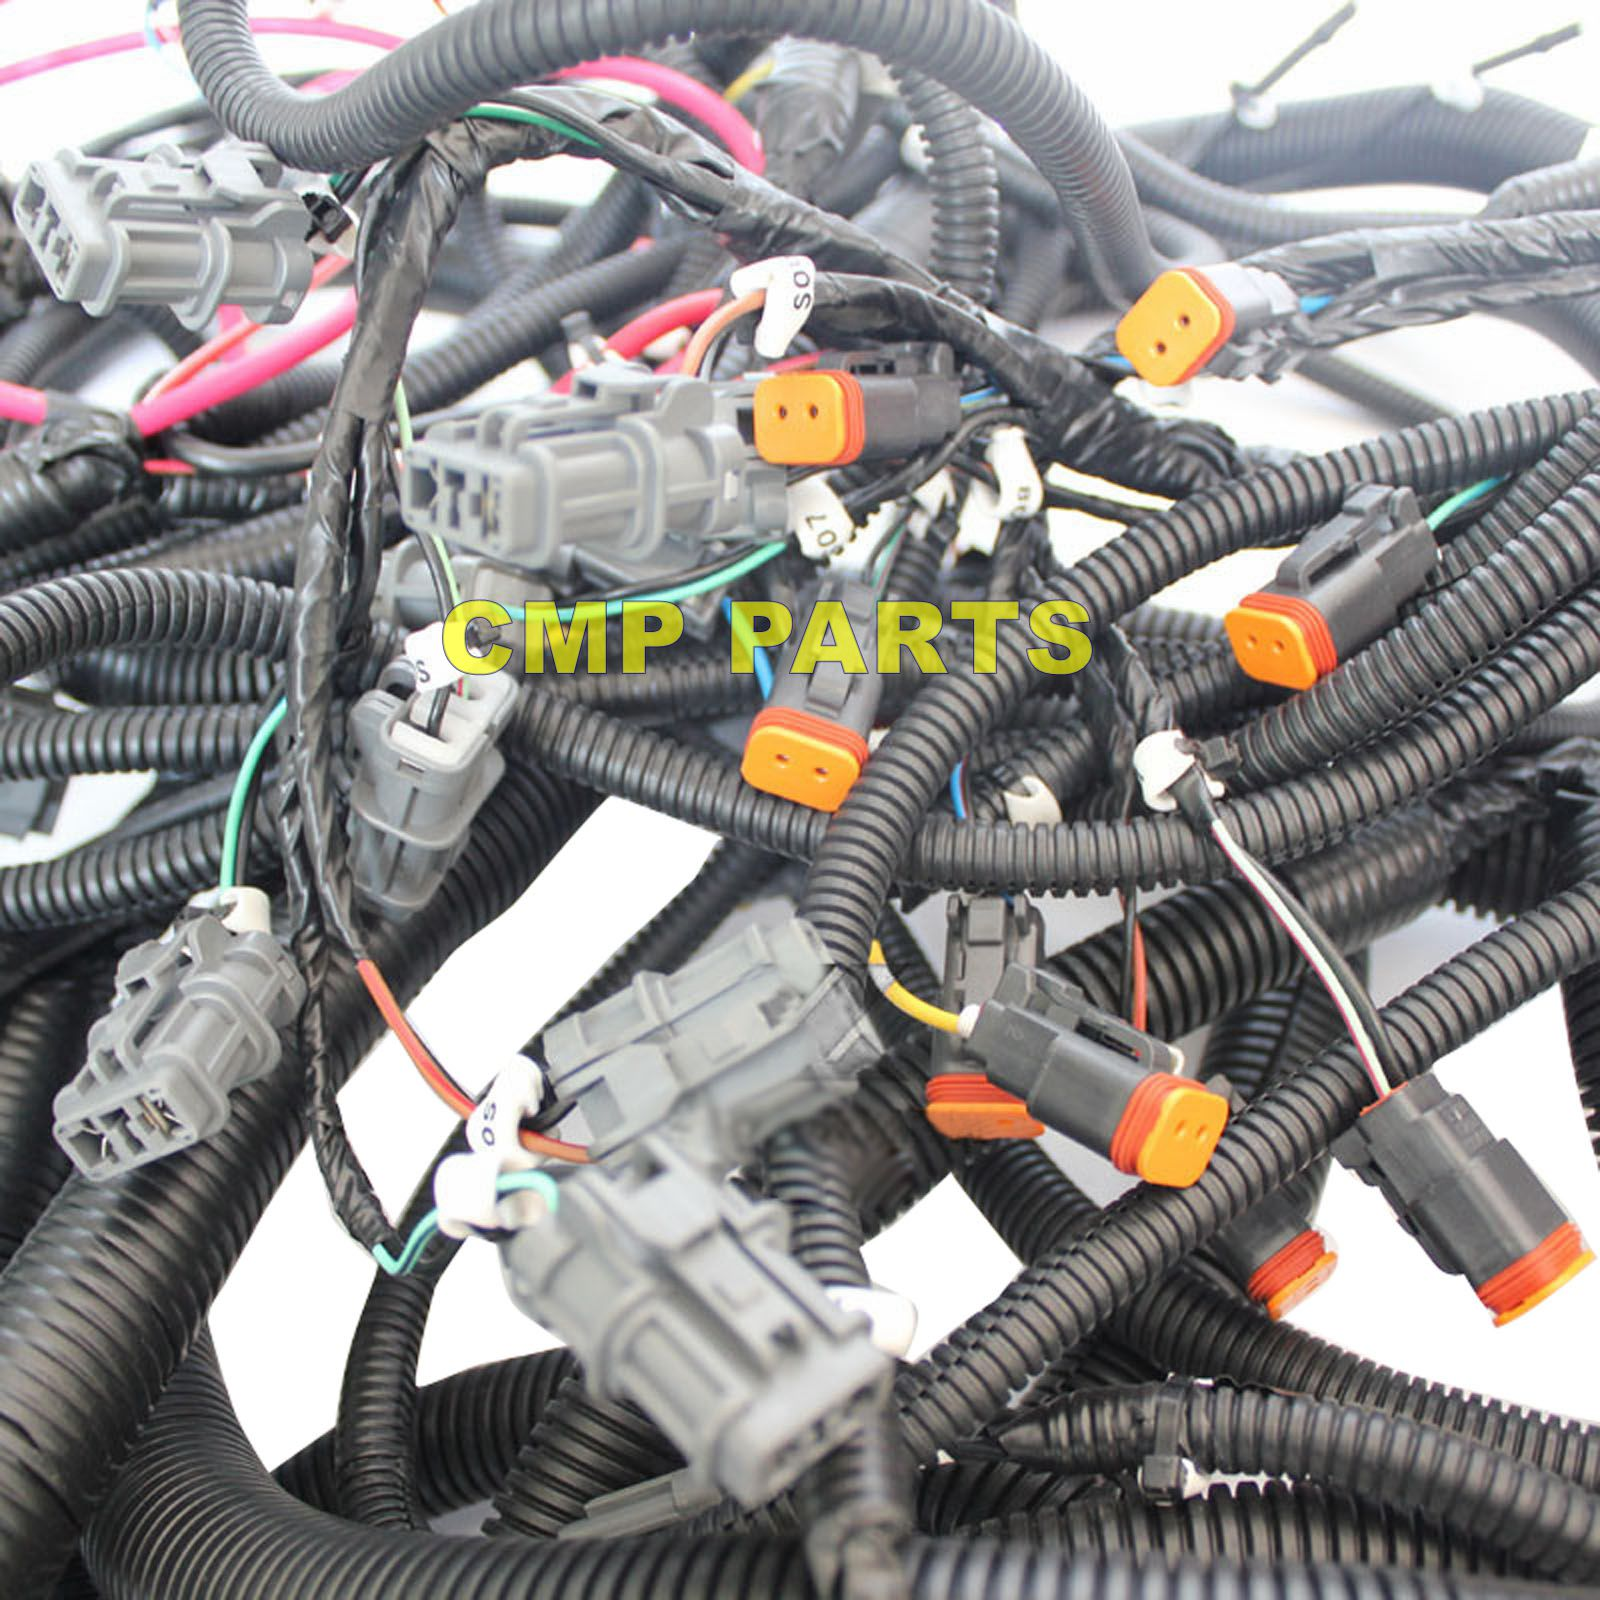 y external wiring harness old for komatsu excavator productpicture0 productpicture1 productpicture2 productpicture3